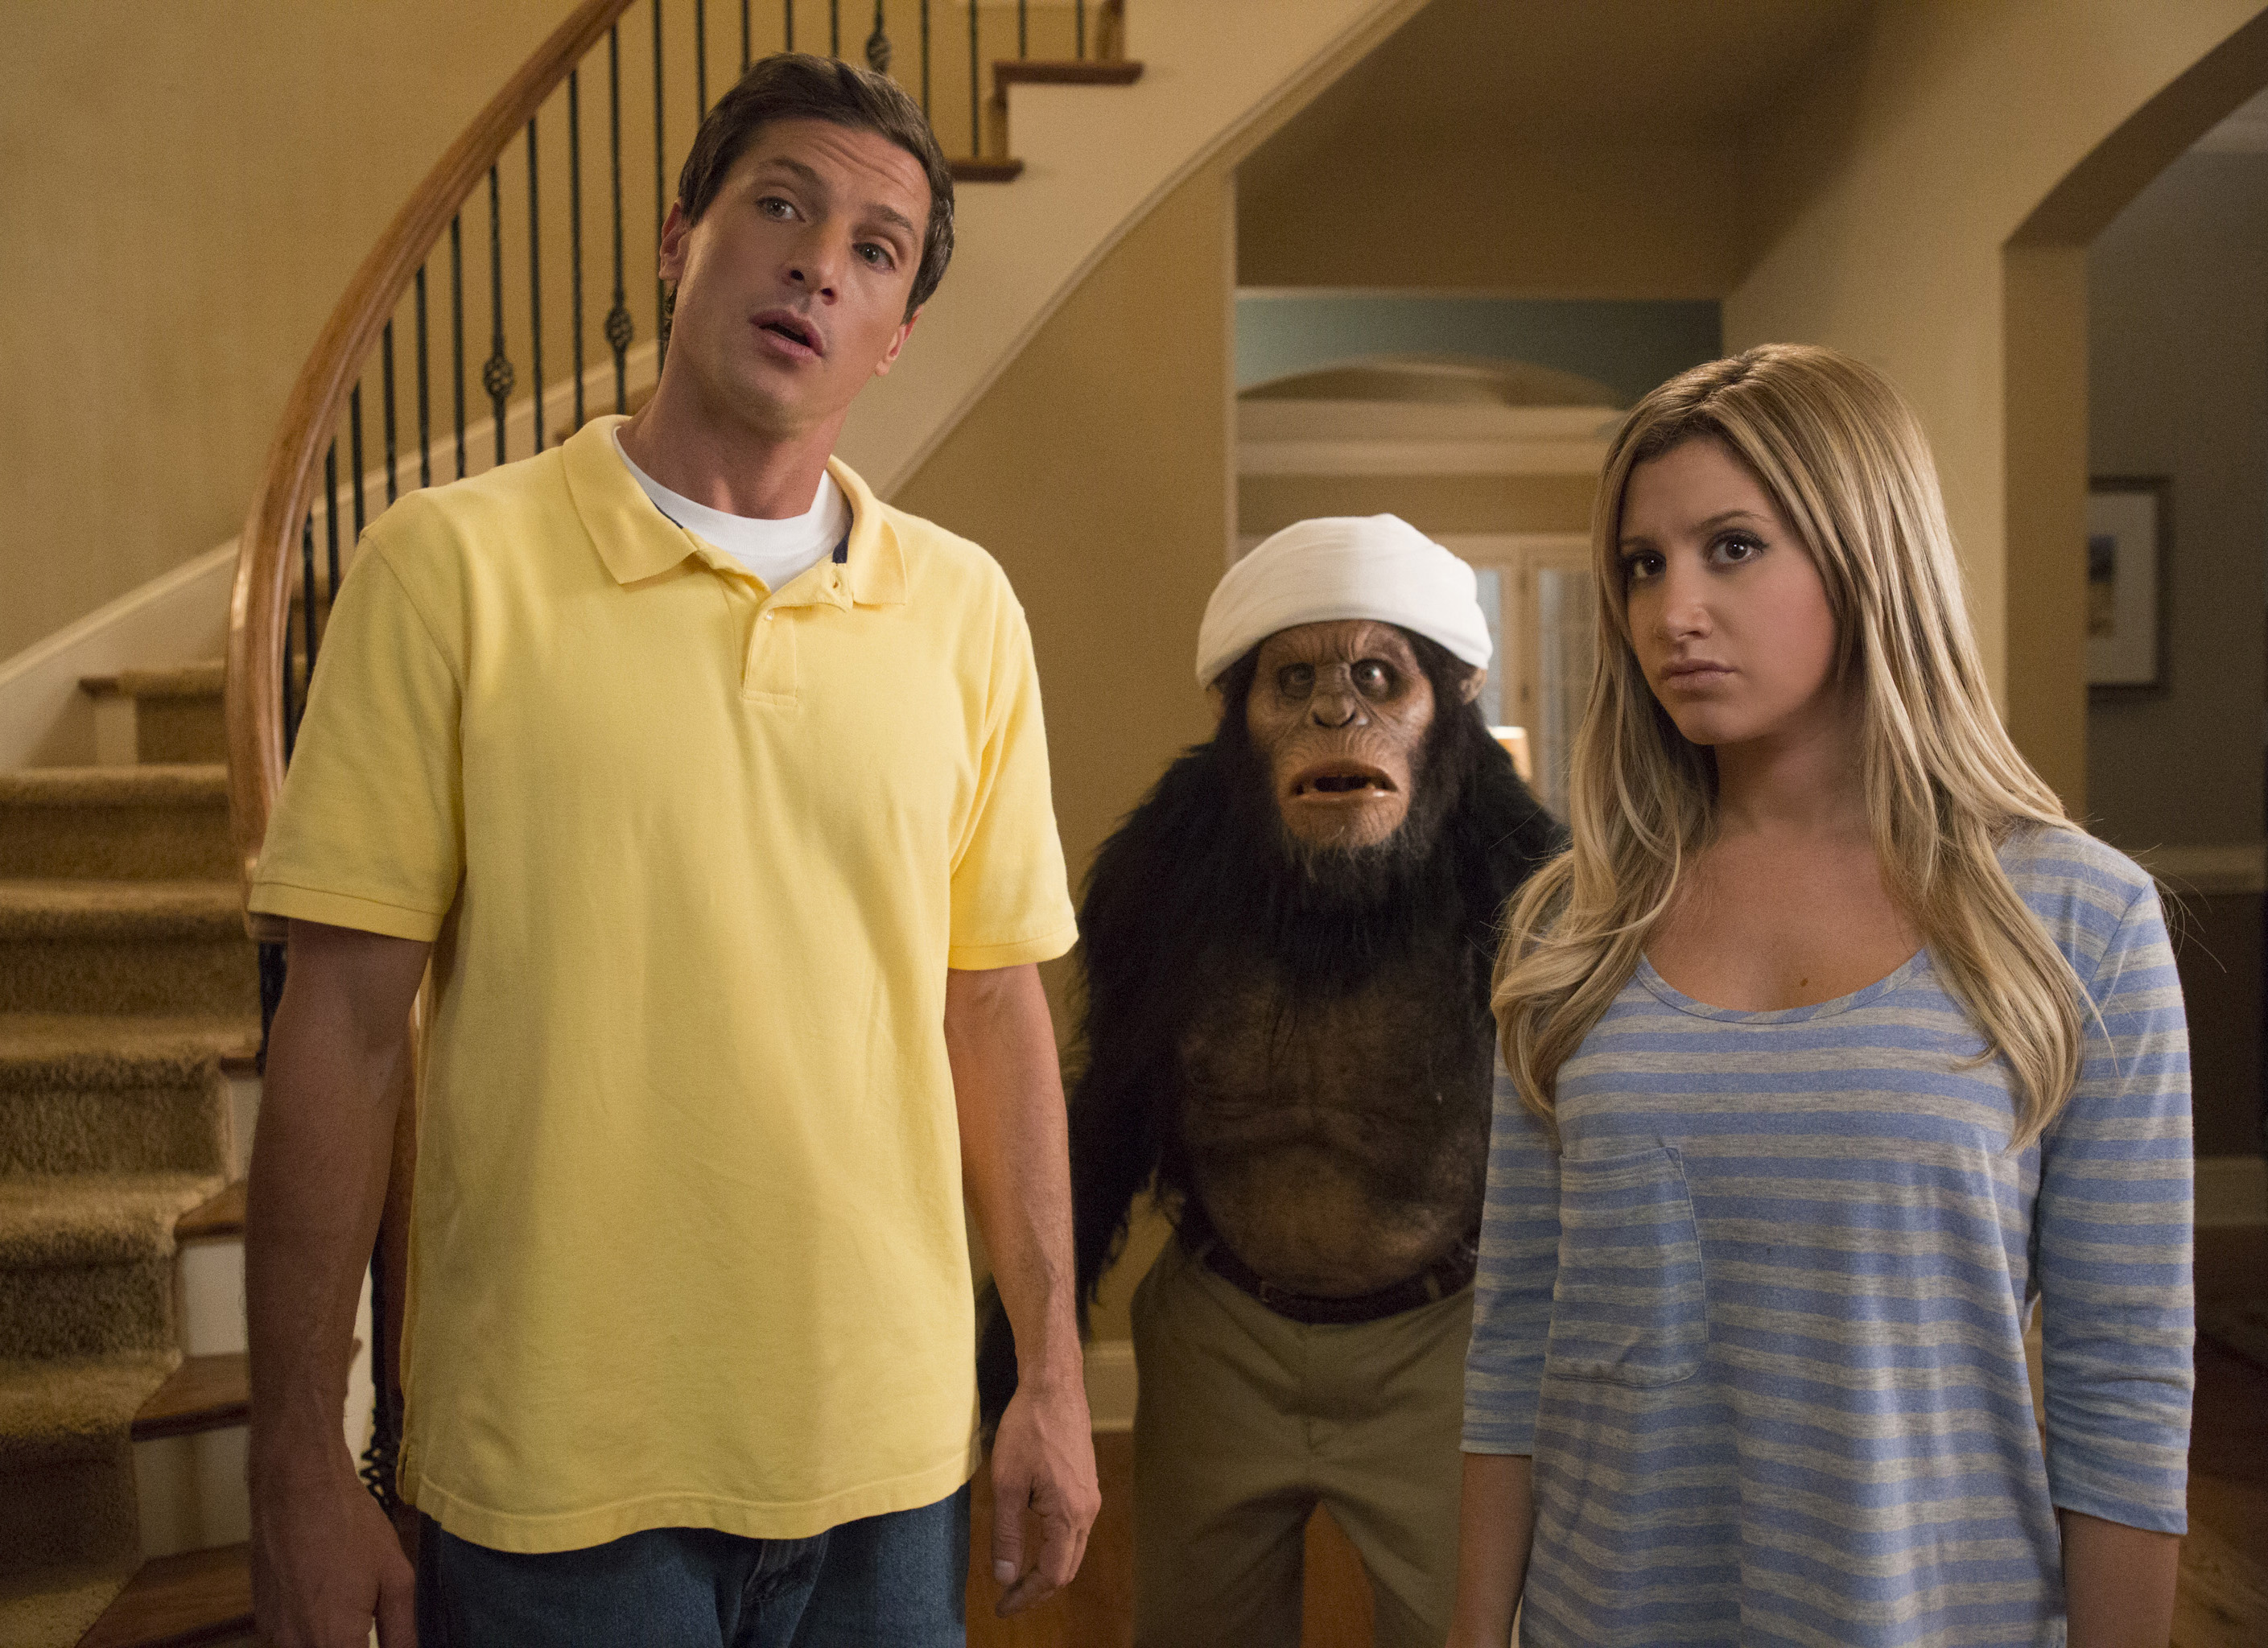 Scary Movie 5 Engages In Scare Tactics The Boston Globe